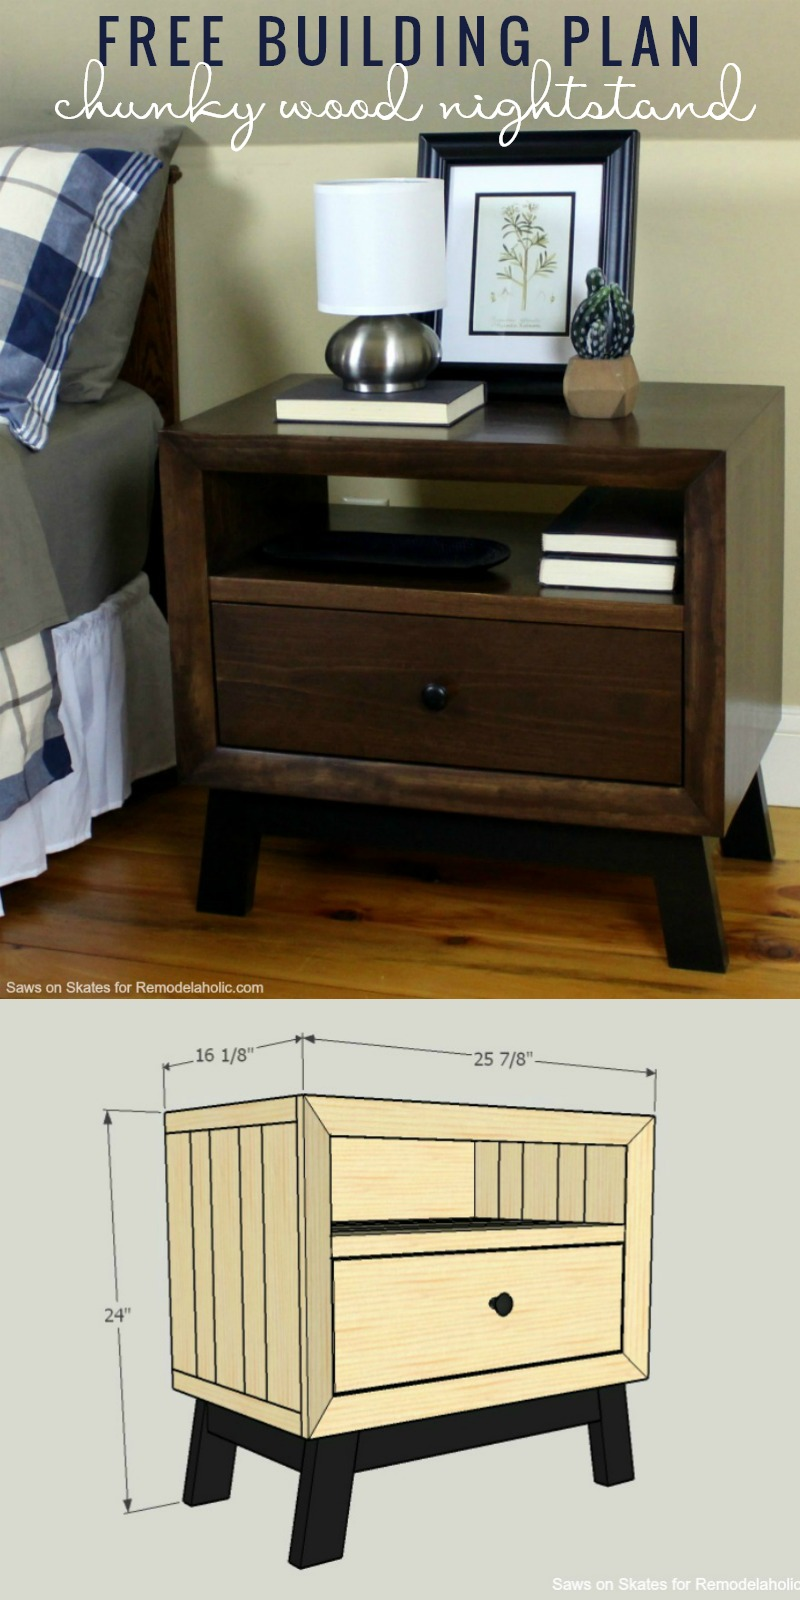 Albert blog diy chunky solid wood nightstand tutorial building plan - Solid wood house plans ...